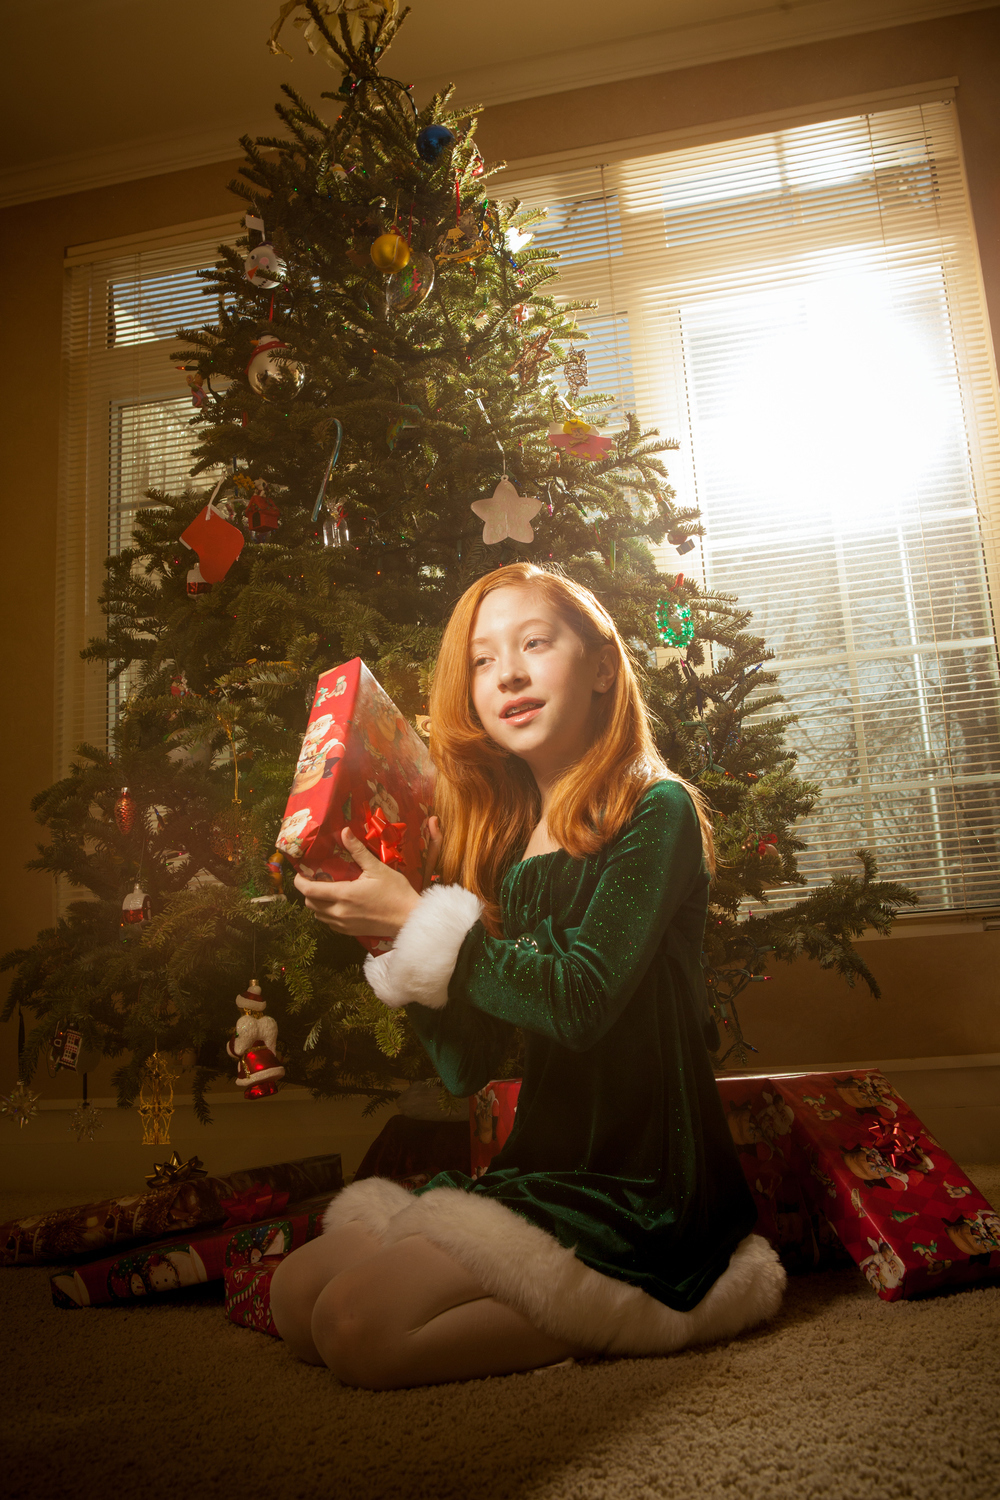 Christmas day portrait, child opening present